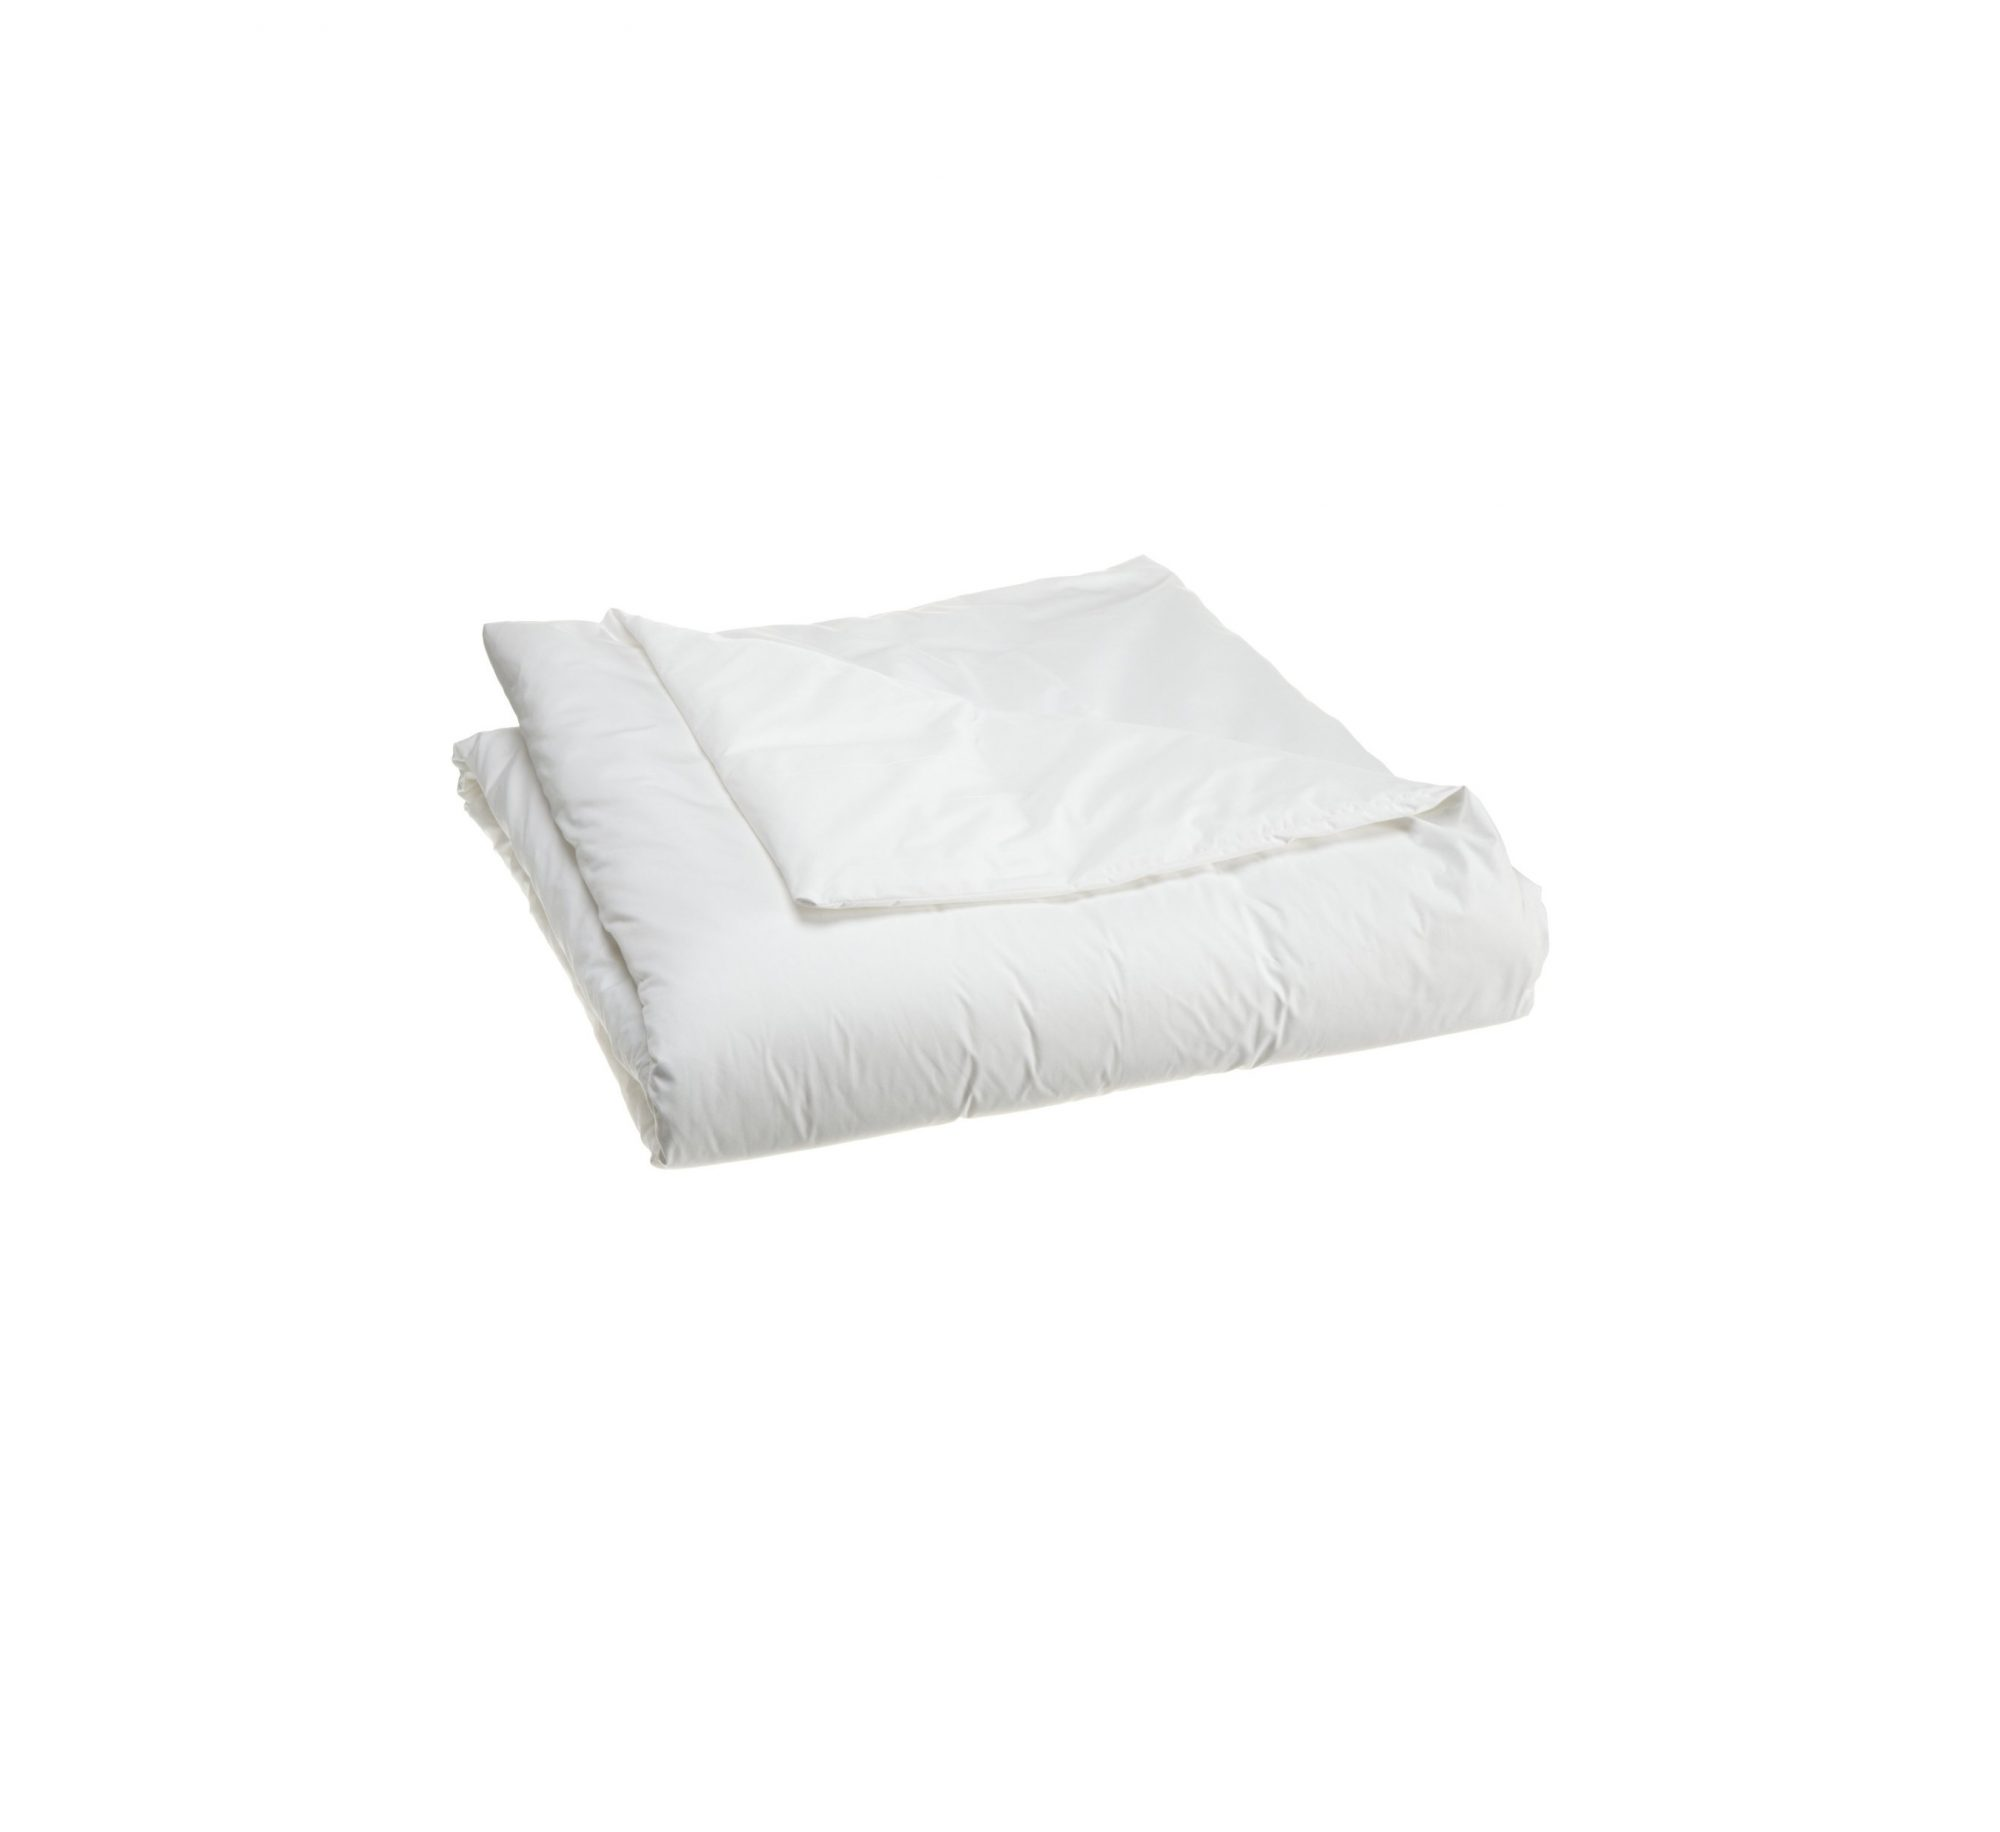 allersoft duvet protector